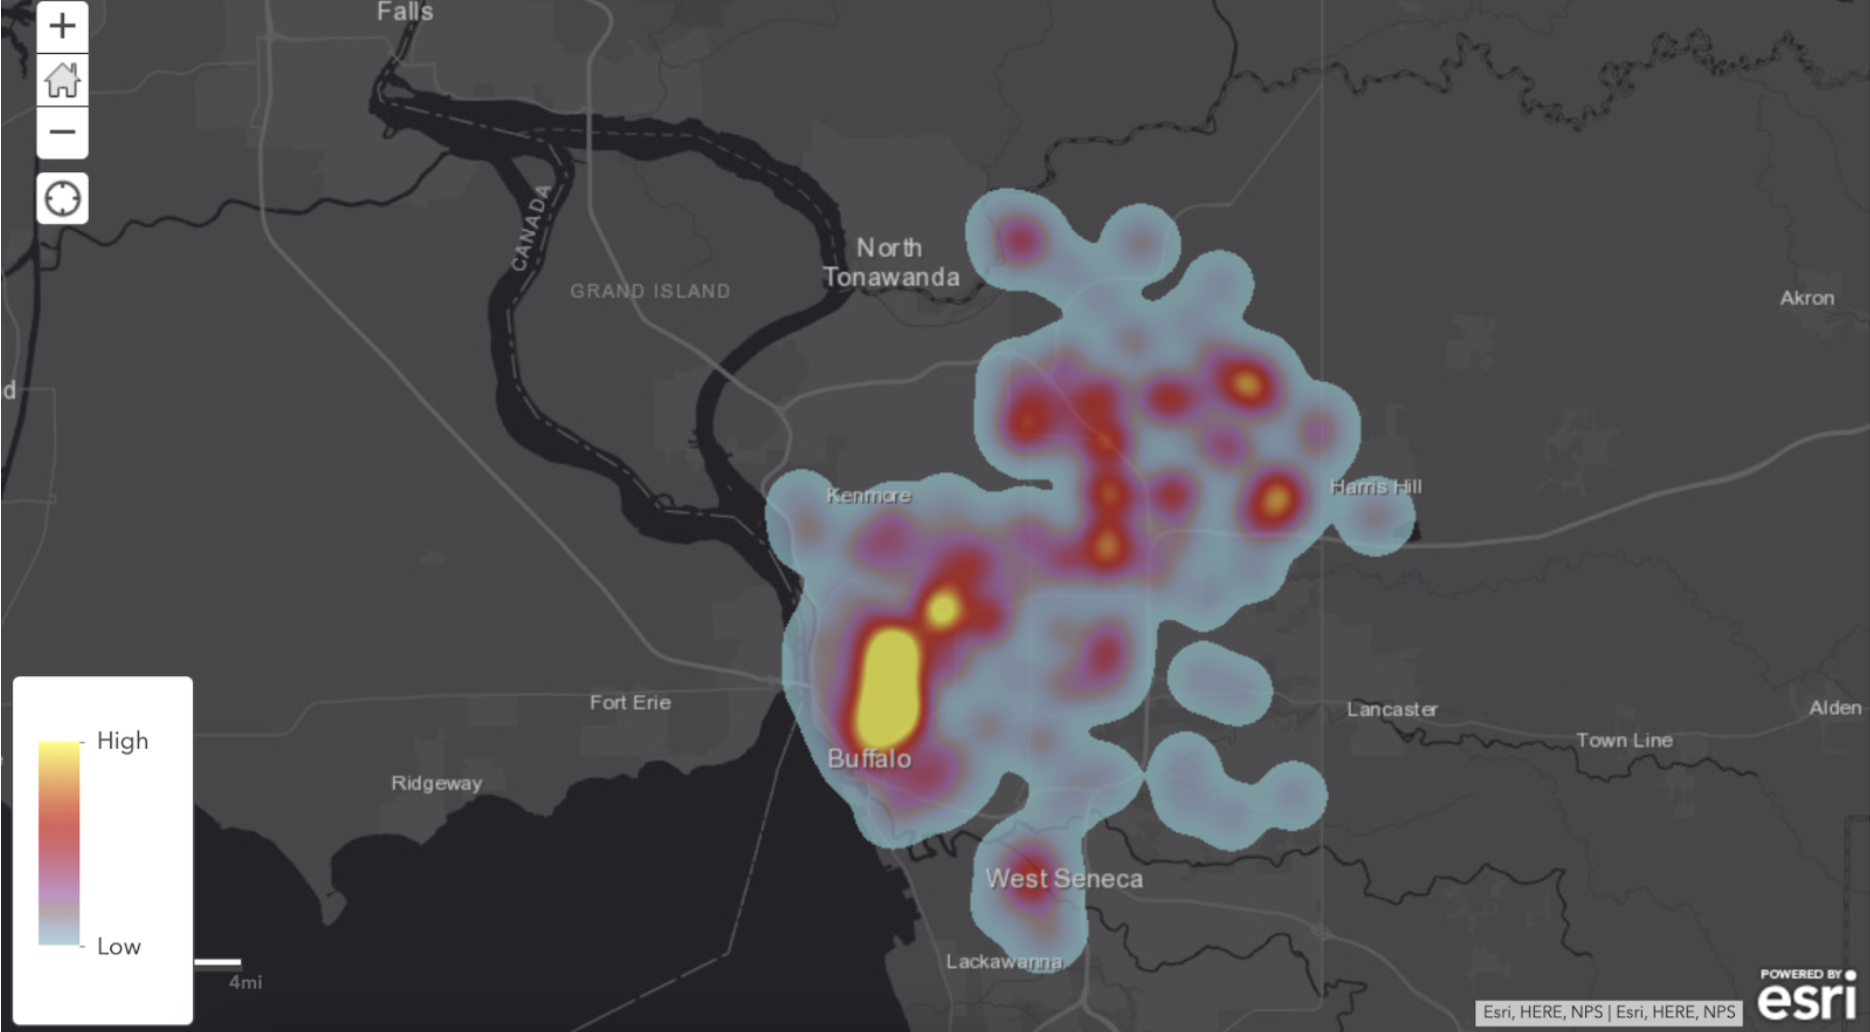 Points of interest data for creating heat maps in healthcare analytics.